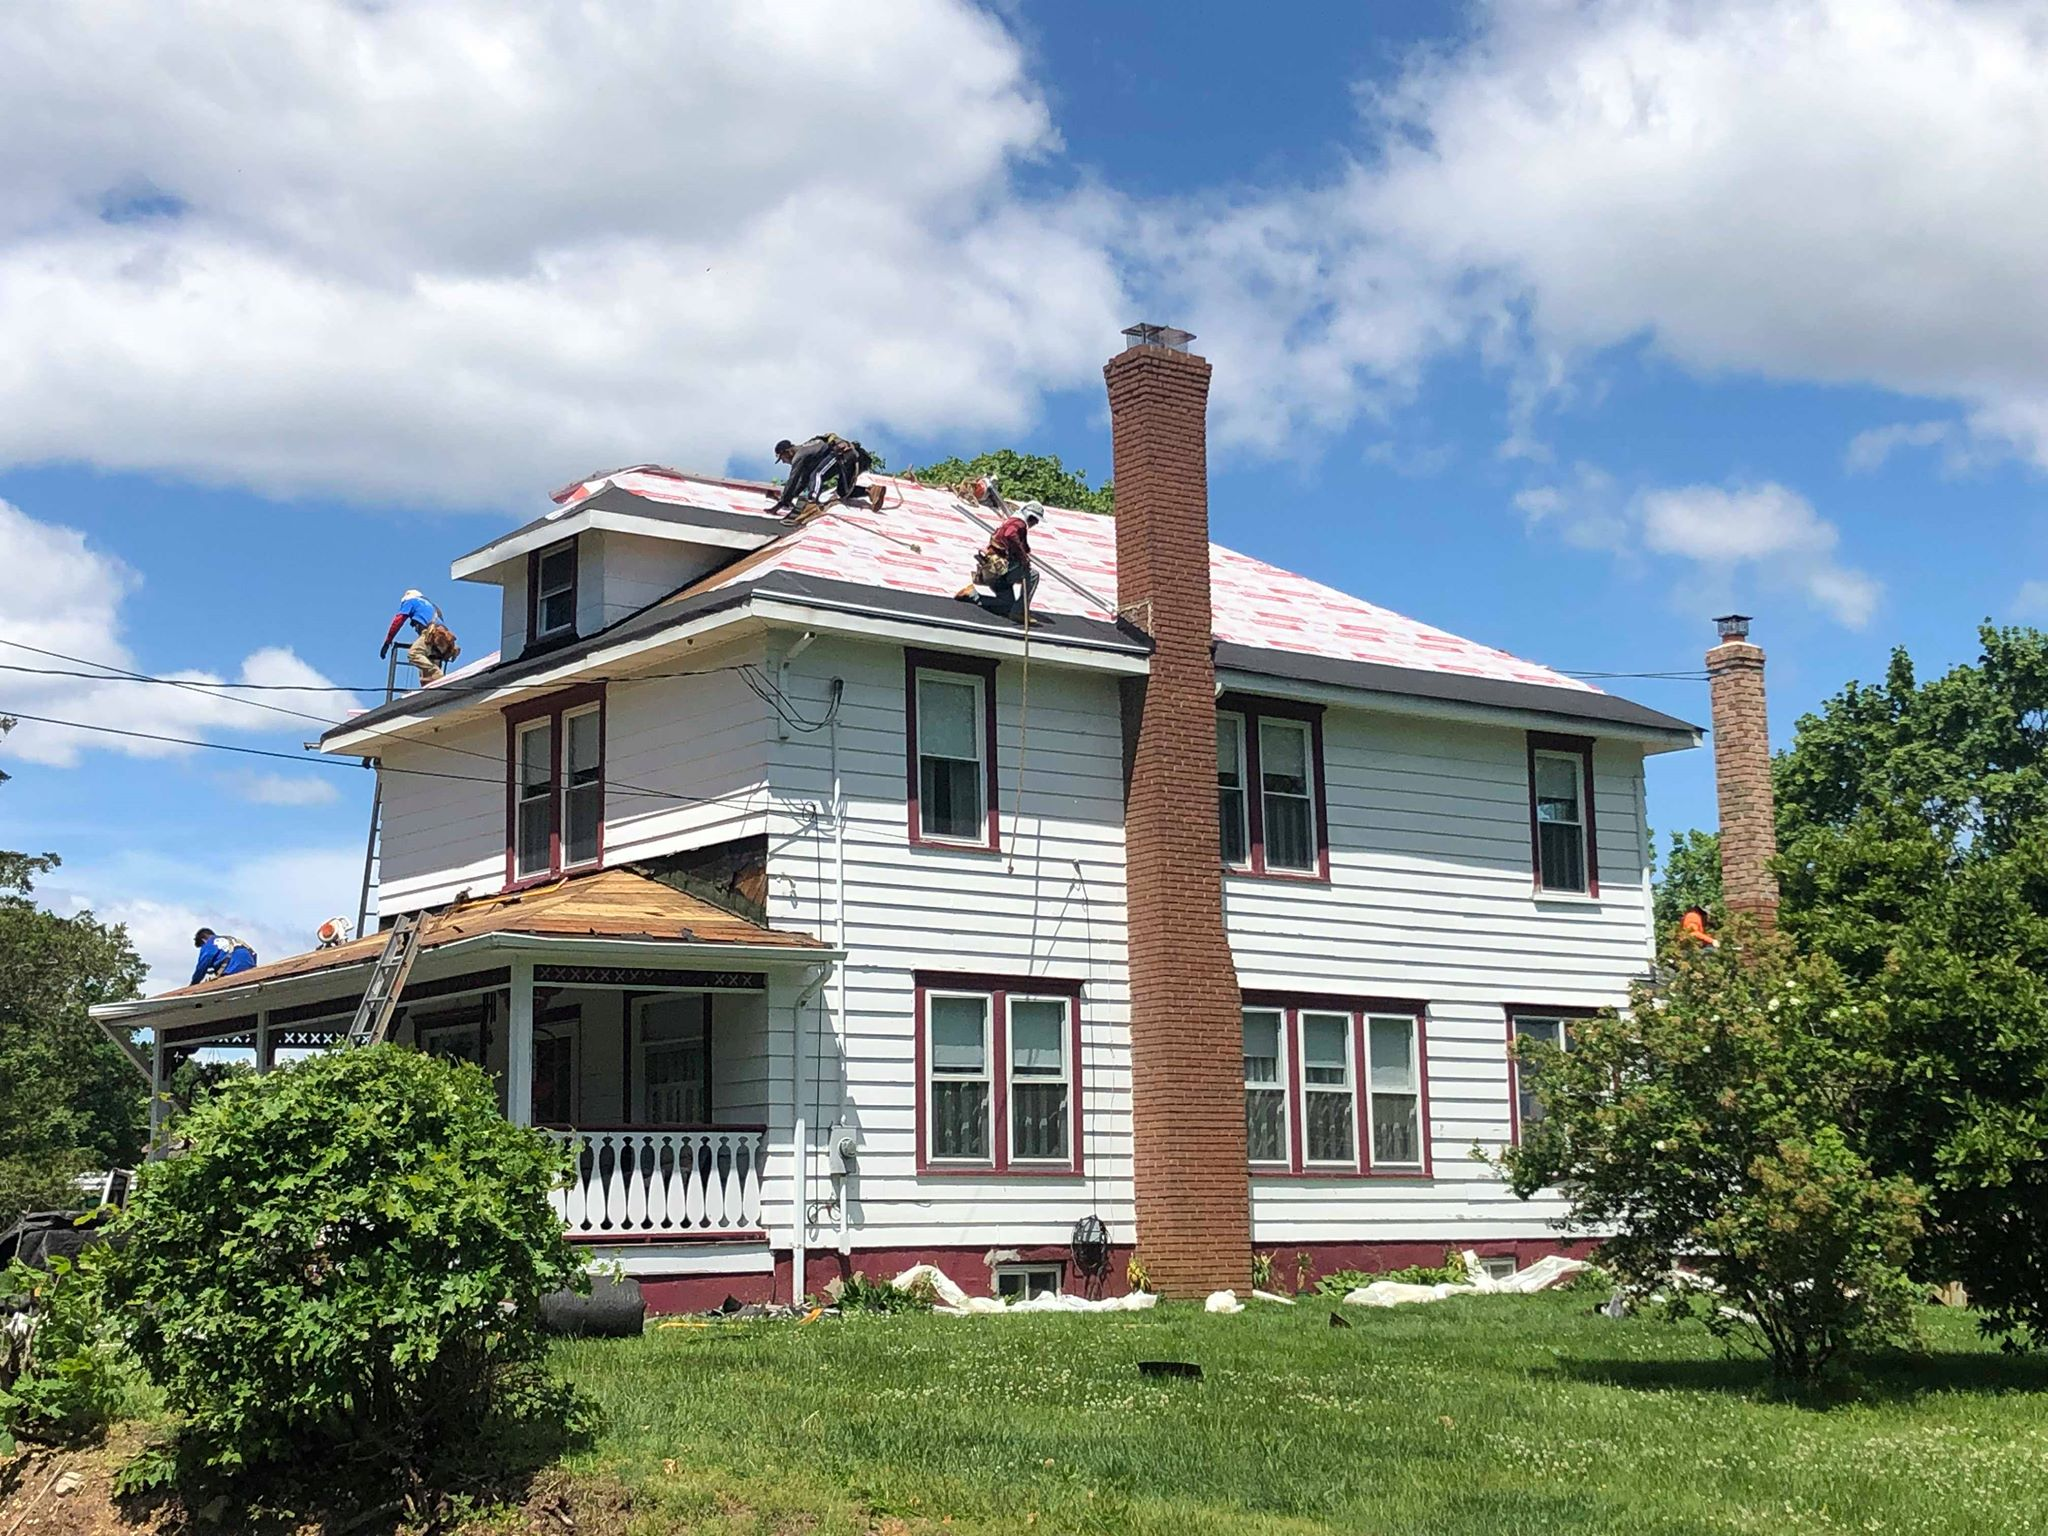 Ocean County Nj Roofing Contractor Services Cephalo Roofing